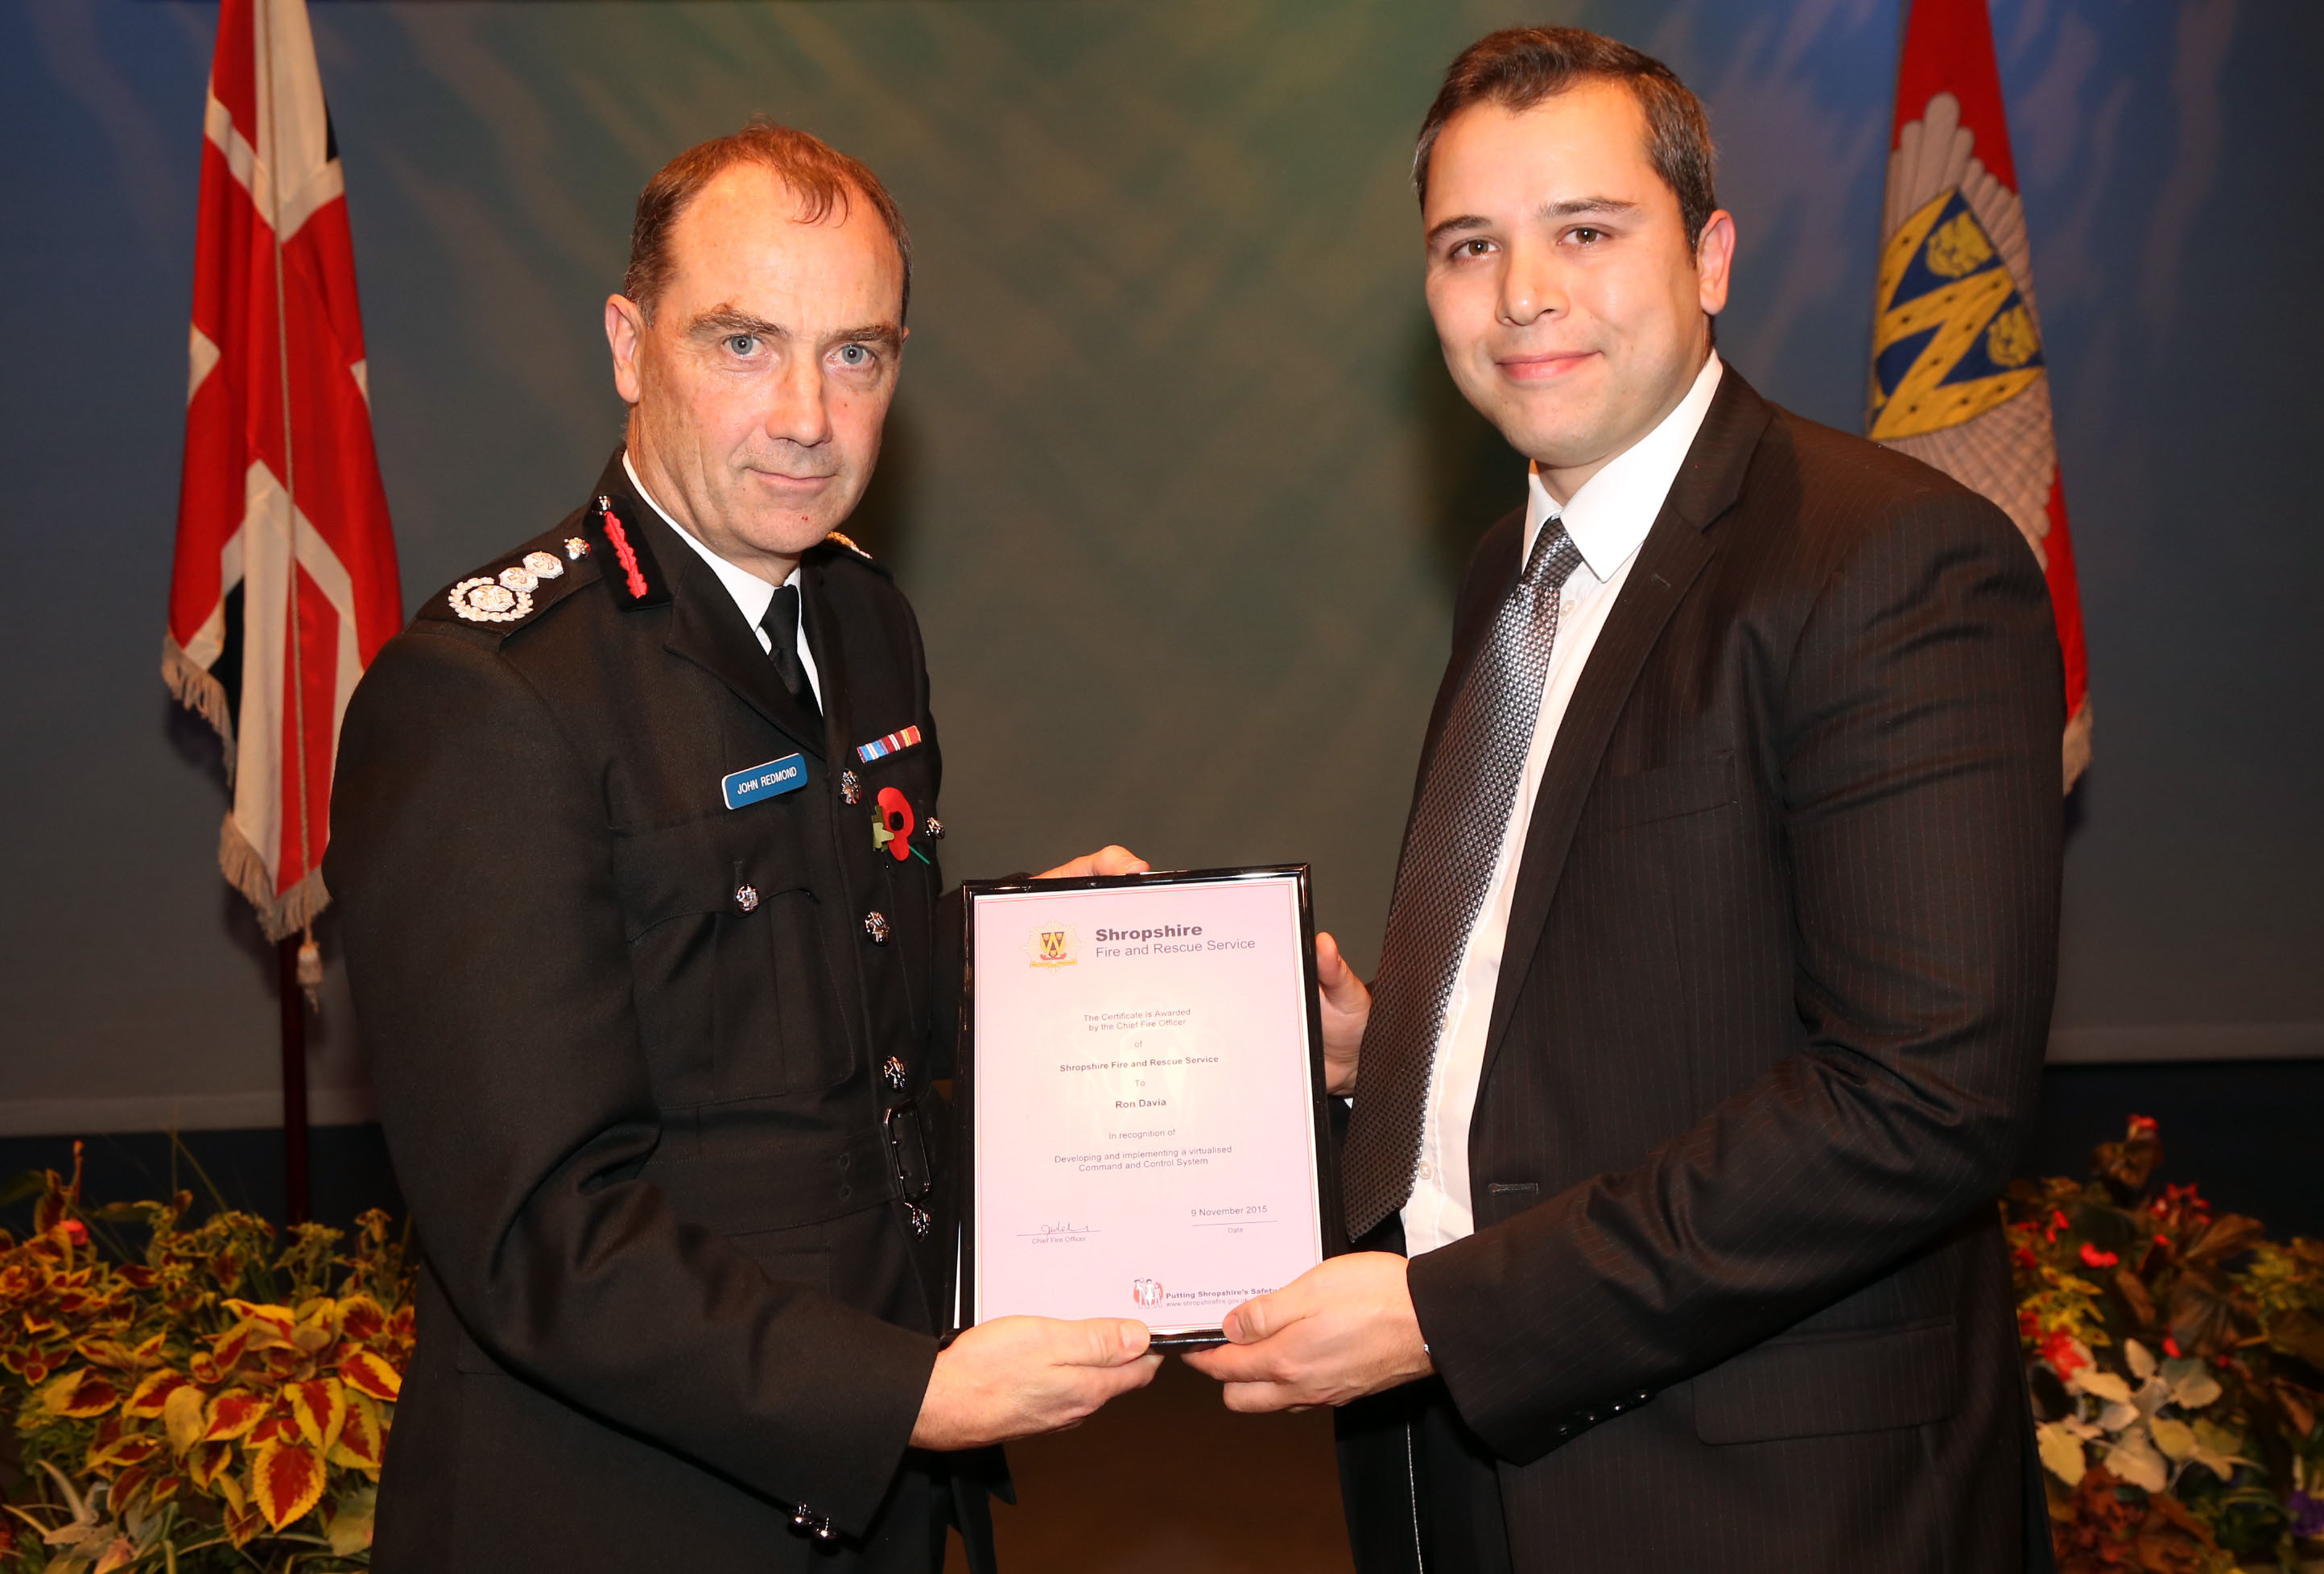 Sally Edwards and Ron Davia (pictured)were praised for their technical IT innovation to improve resilience which has made Shropshire Fire and Rescue Service the first brigade in the UK to make such an achievement